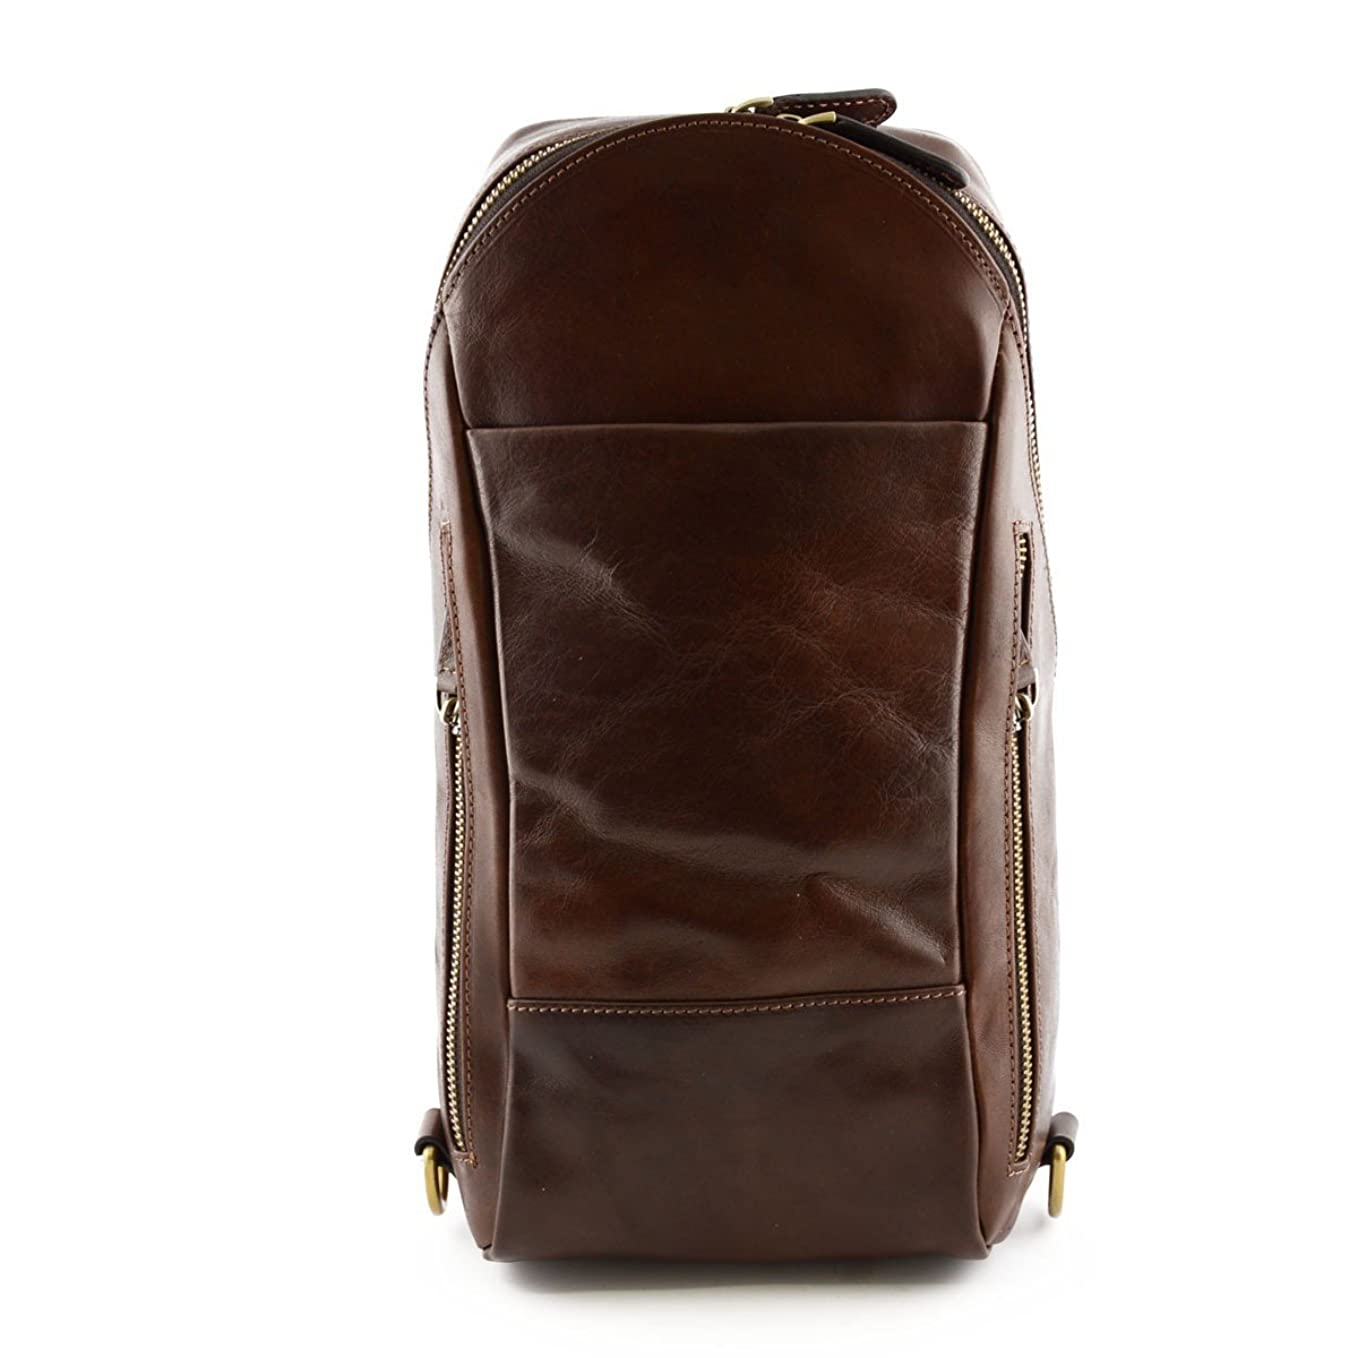 北へ欠伸操るMade In Italy Man Backpack In Genuine Leather With 2 Side Pockets Color Dark Brown - Backpack